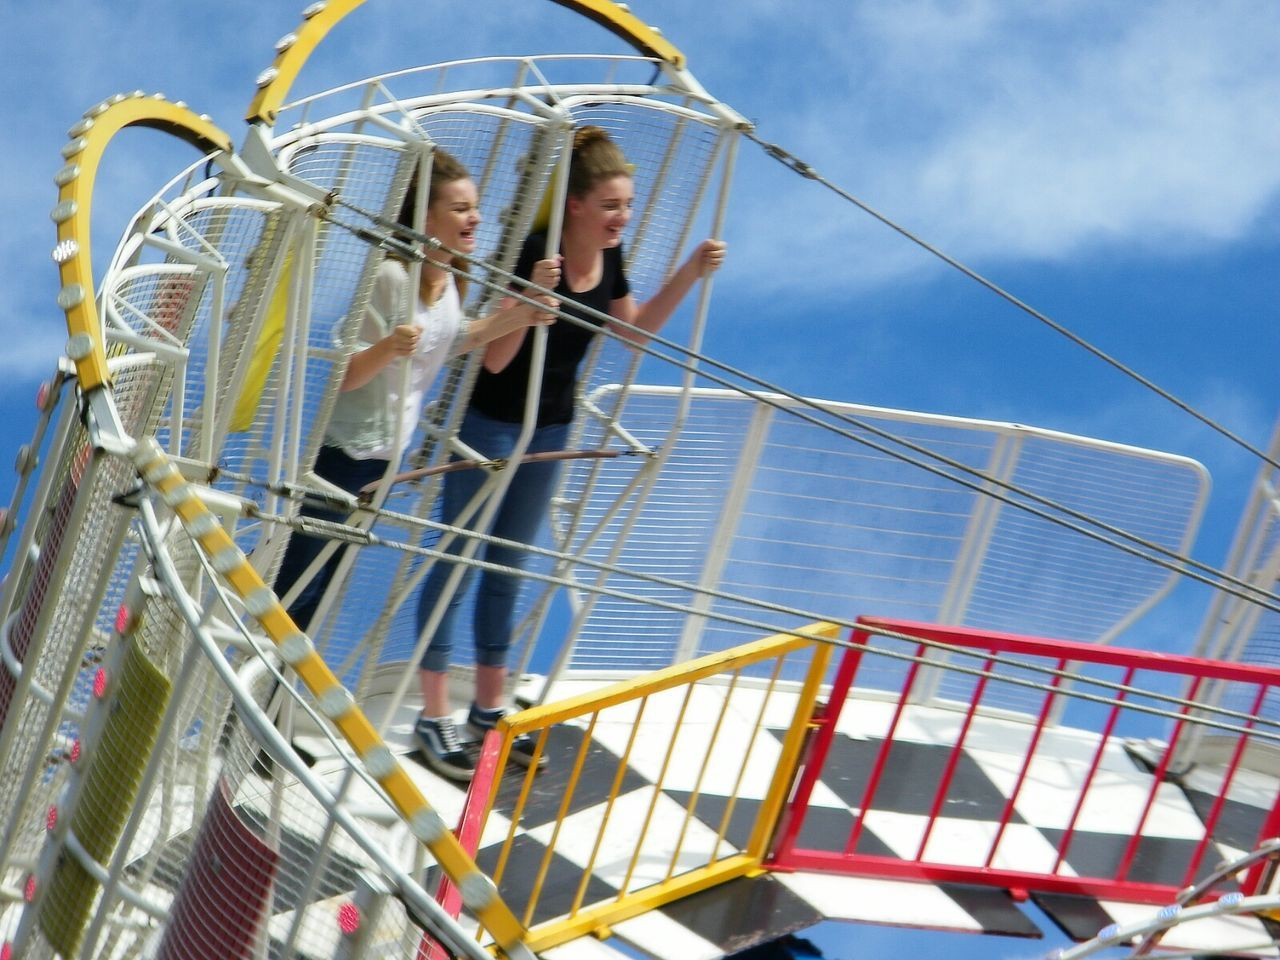 railing, outdoors, amusement park, low angle view, day, sky, sea, amusement park ride, real people